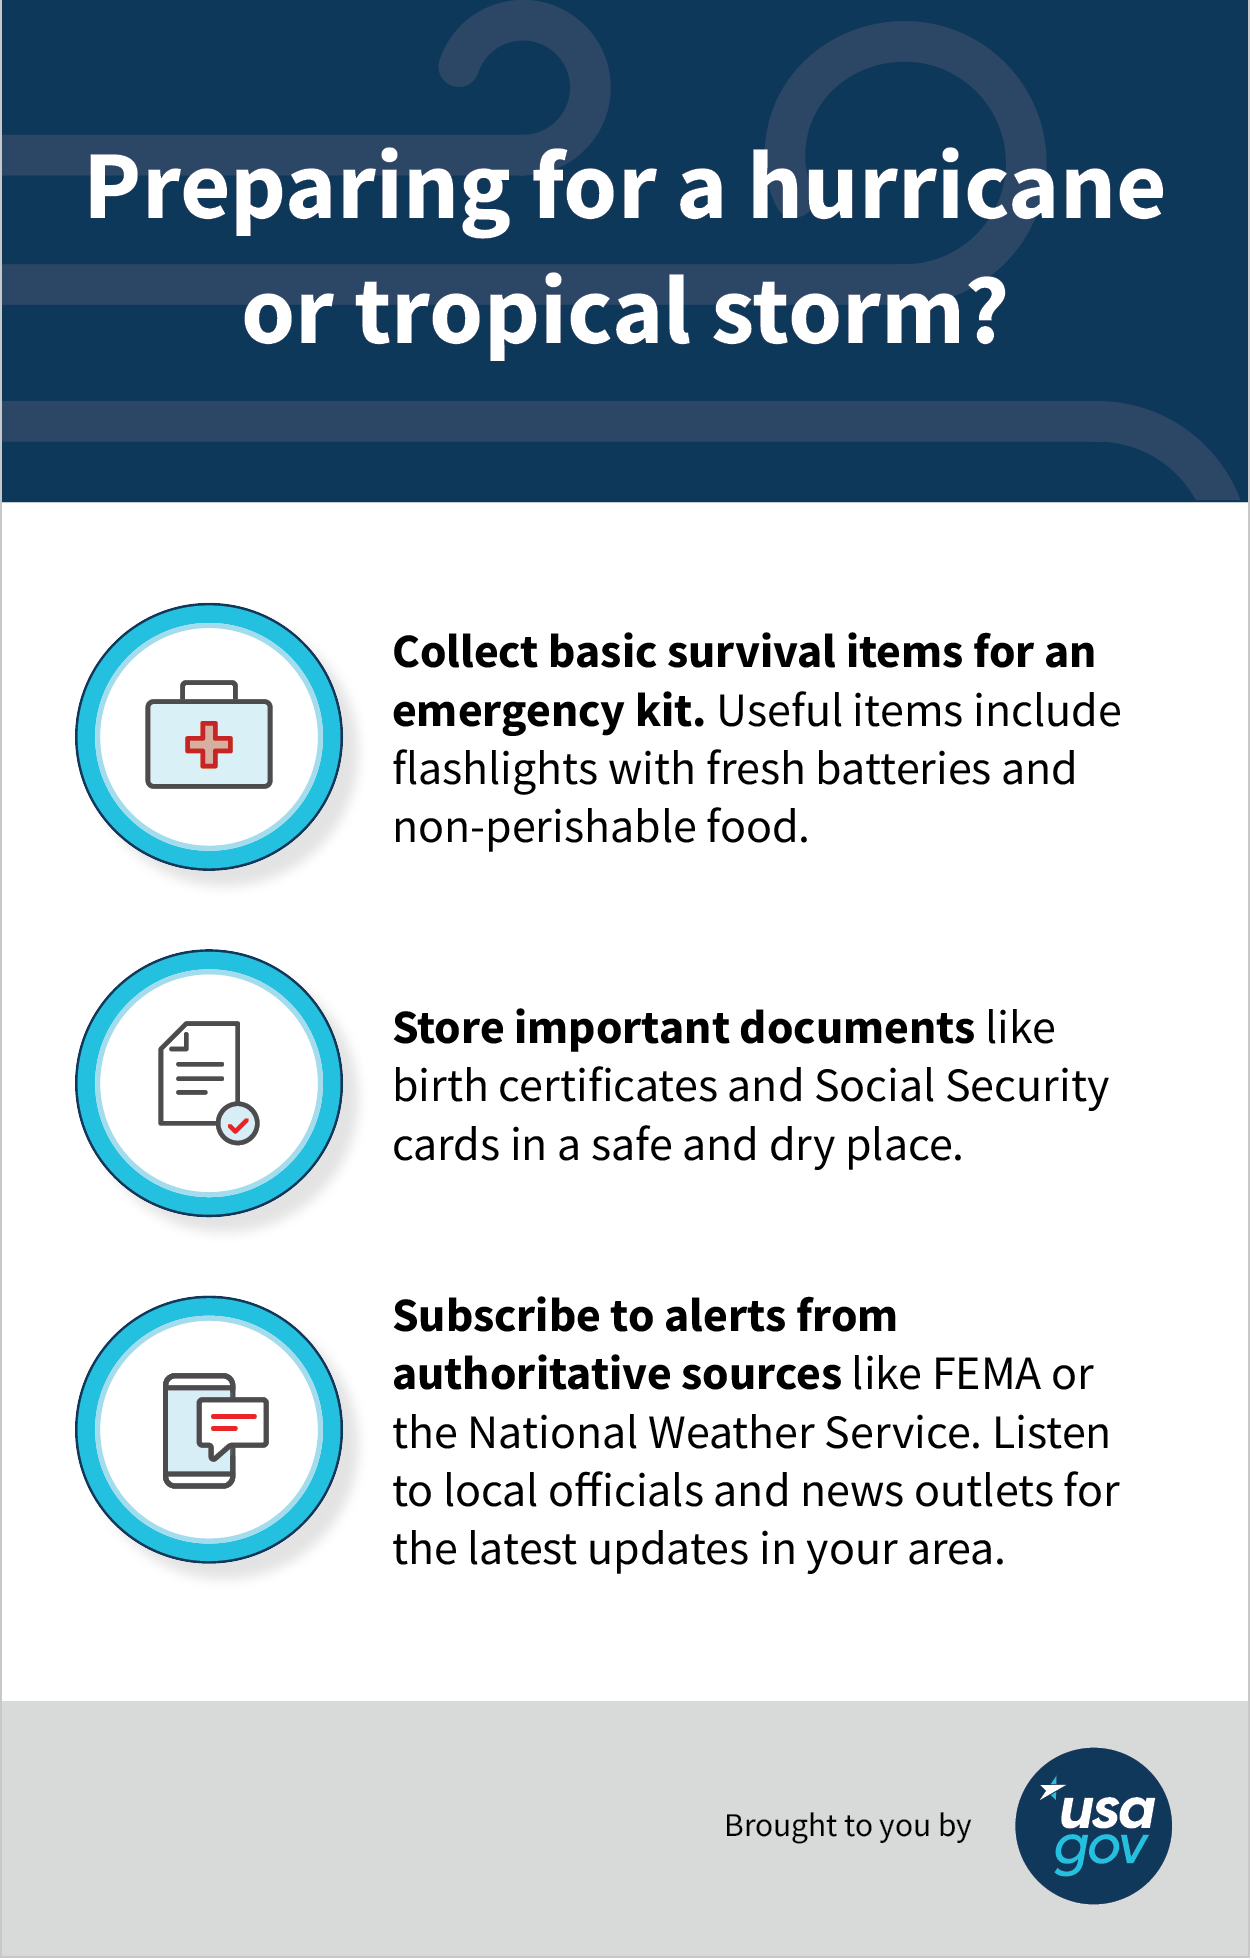 Tips on how to prepare for a hurricane or tropical storm